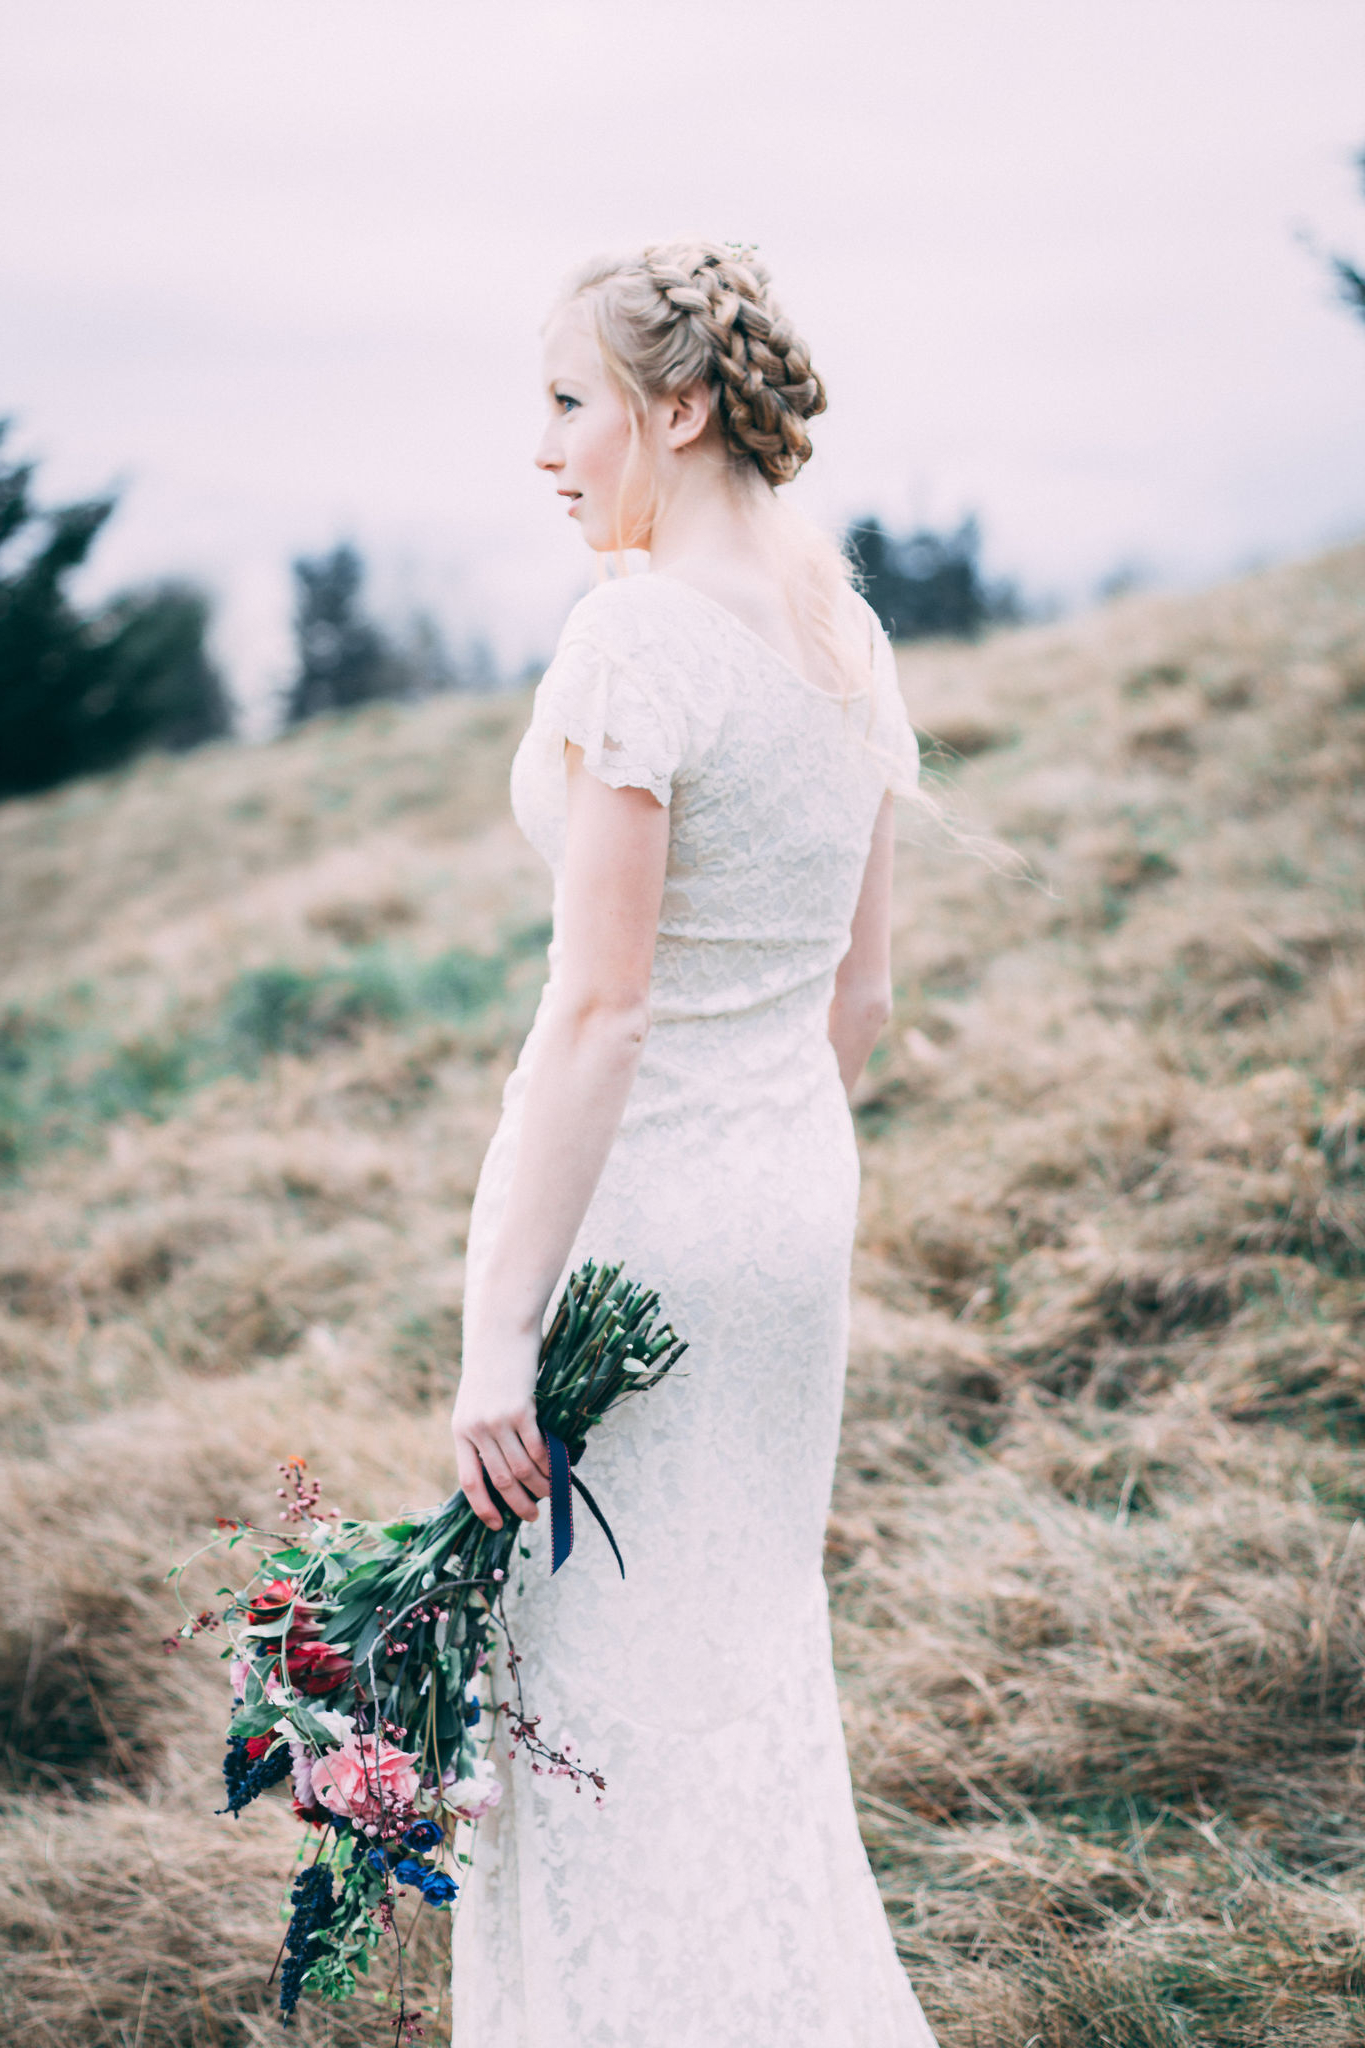 4 Stunning Hairstyles For Short Hair Intended For Preferred Pulled Back Bridal Hairstyles For Short Hair (View 2 of 20)